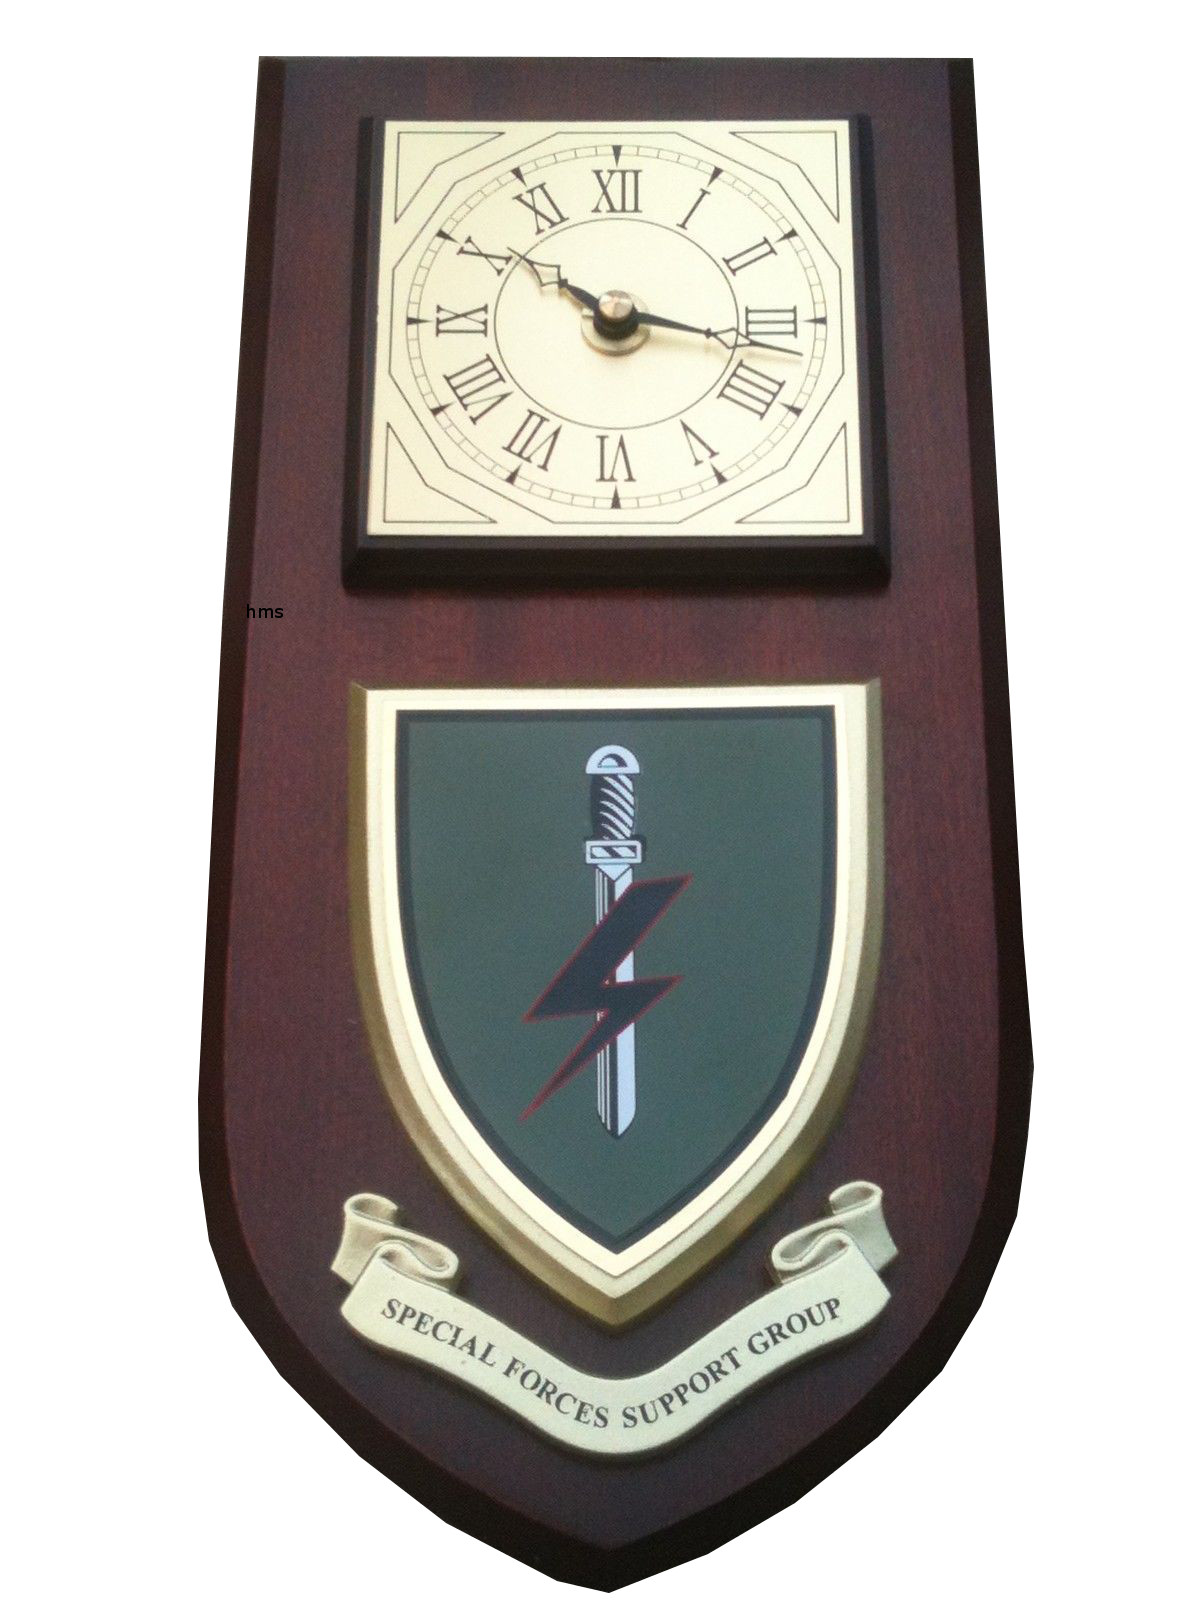 Special Clock Special Forces Support Group Sfsg Regiment Military Wall Plaque Clock